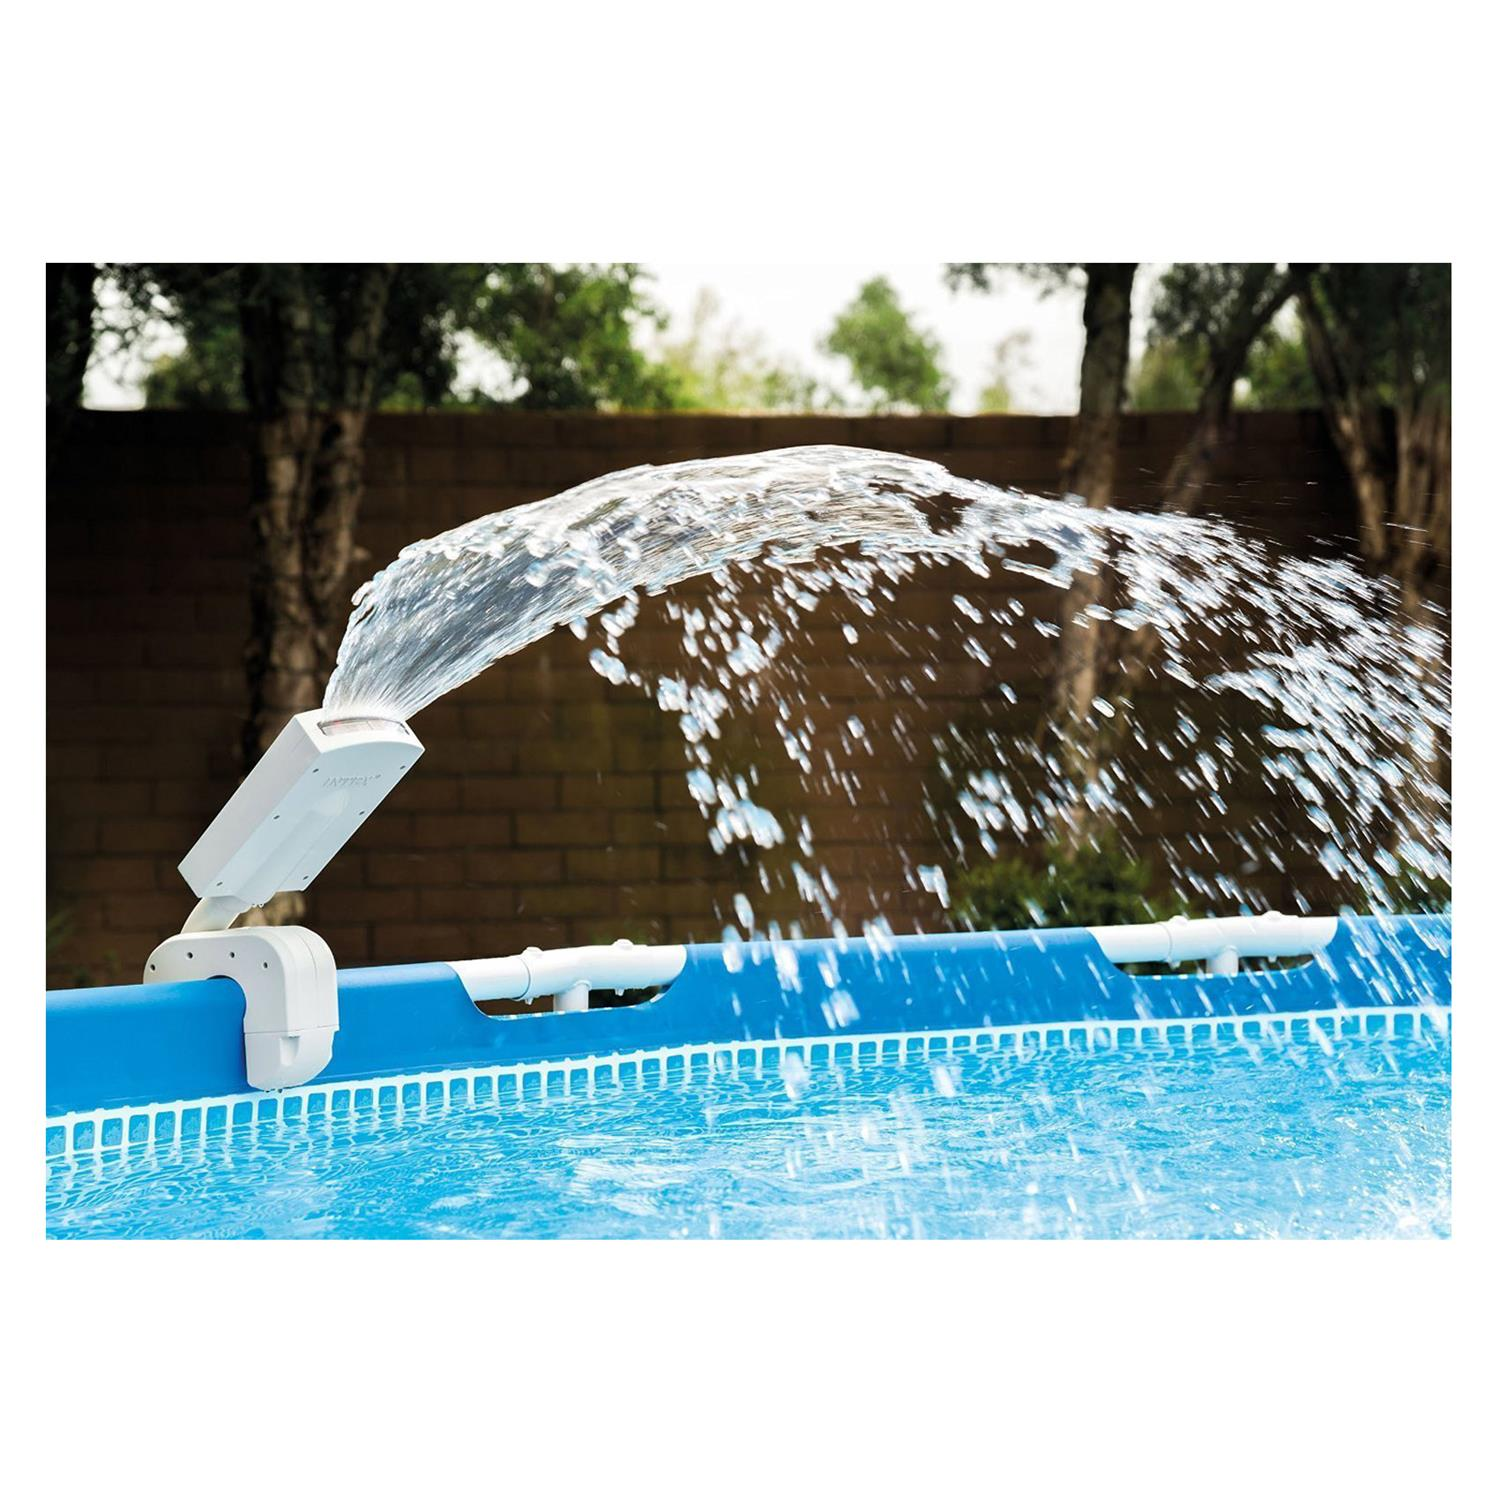 Pool Abdeckplane Spannen Intex 28089 Multi Color Led Pool Sprayer